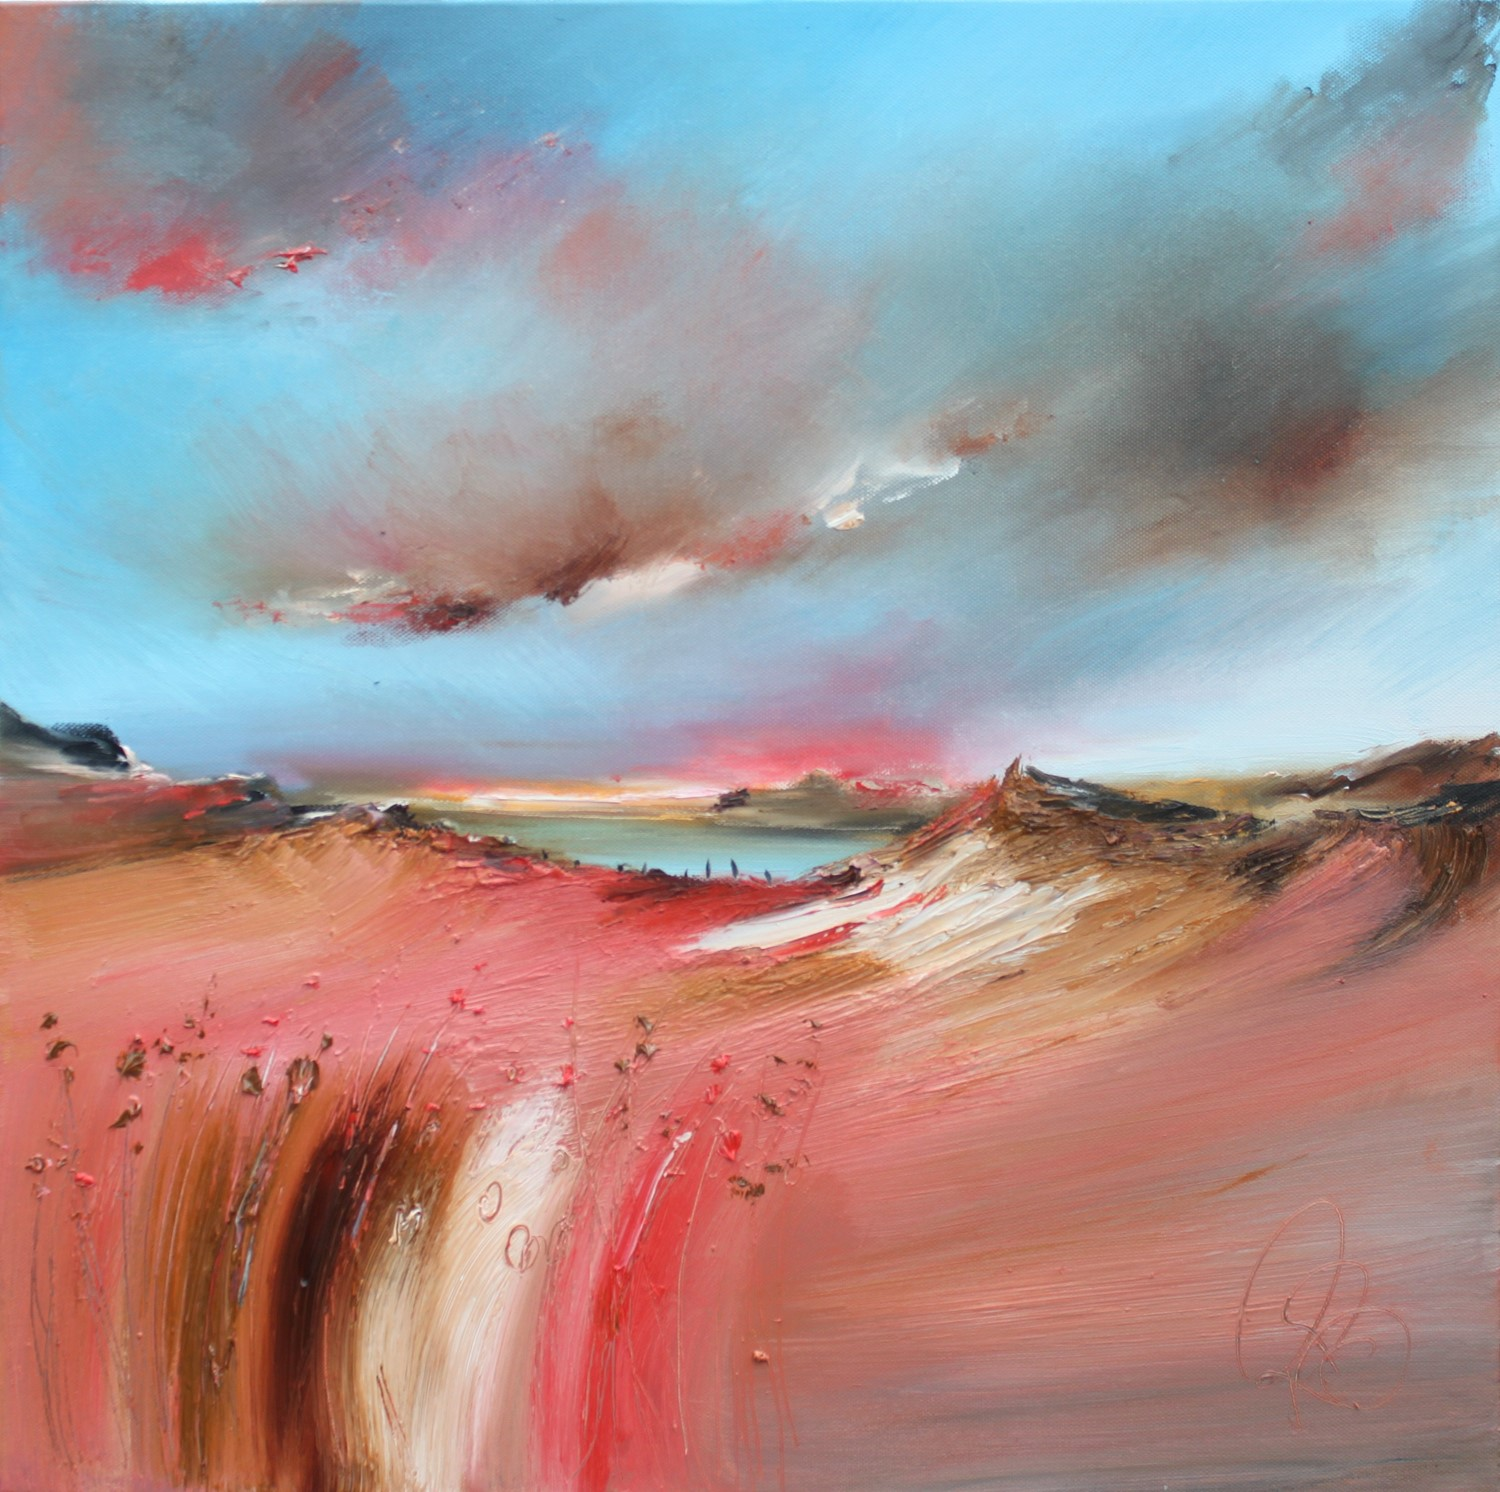 'Leaving the Coast Behind' by artist Rosanne Barr